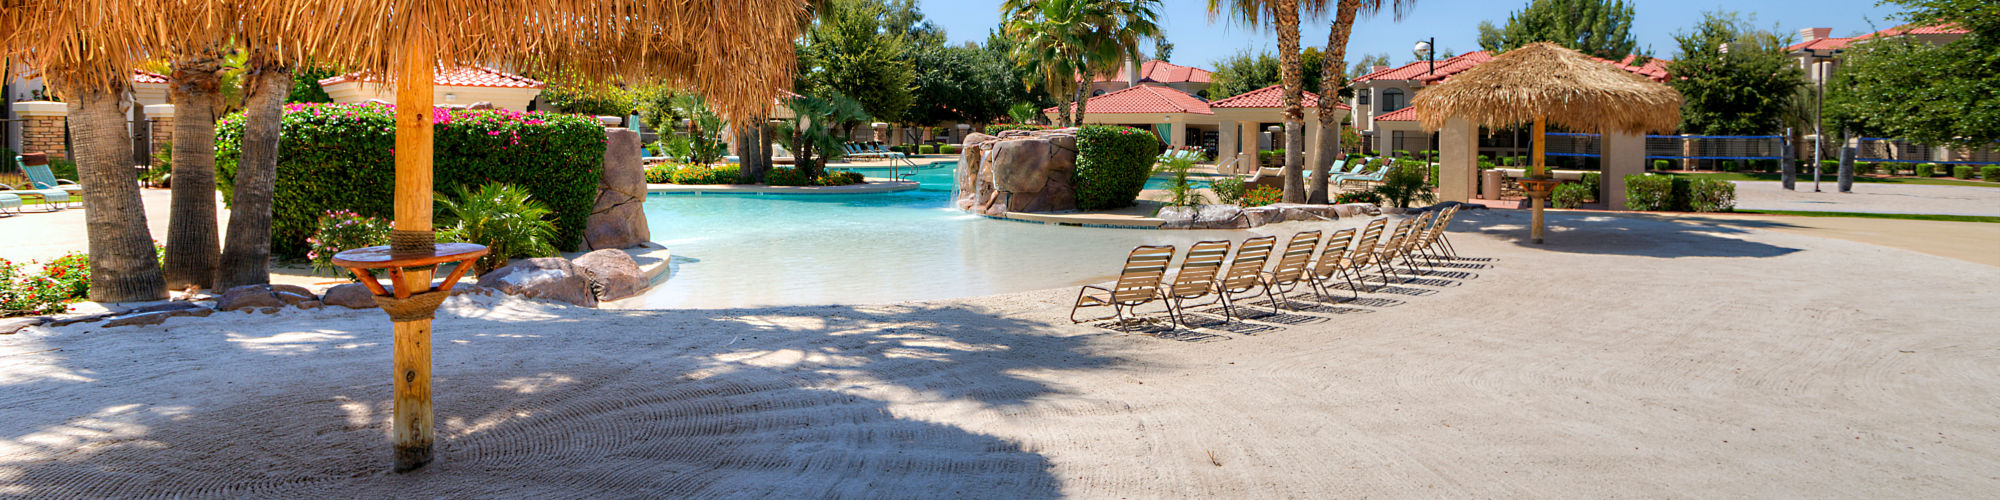 Amenities at San Cervantes in Chandler, Arizona